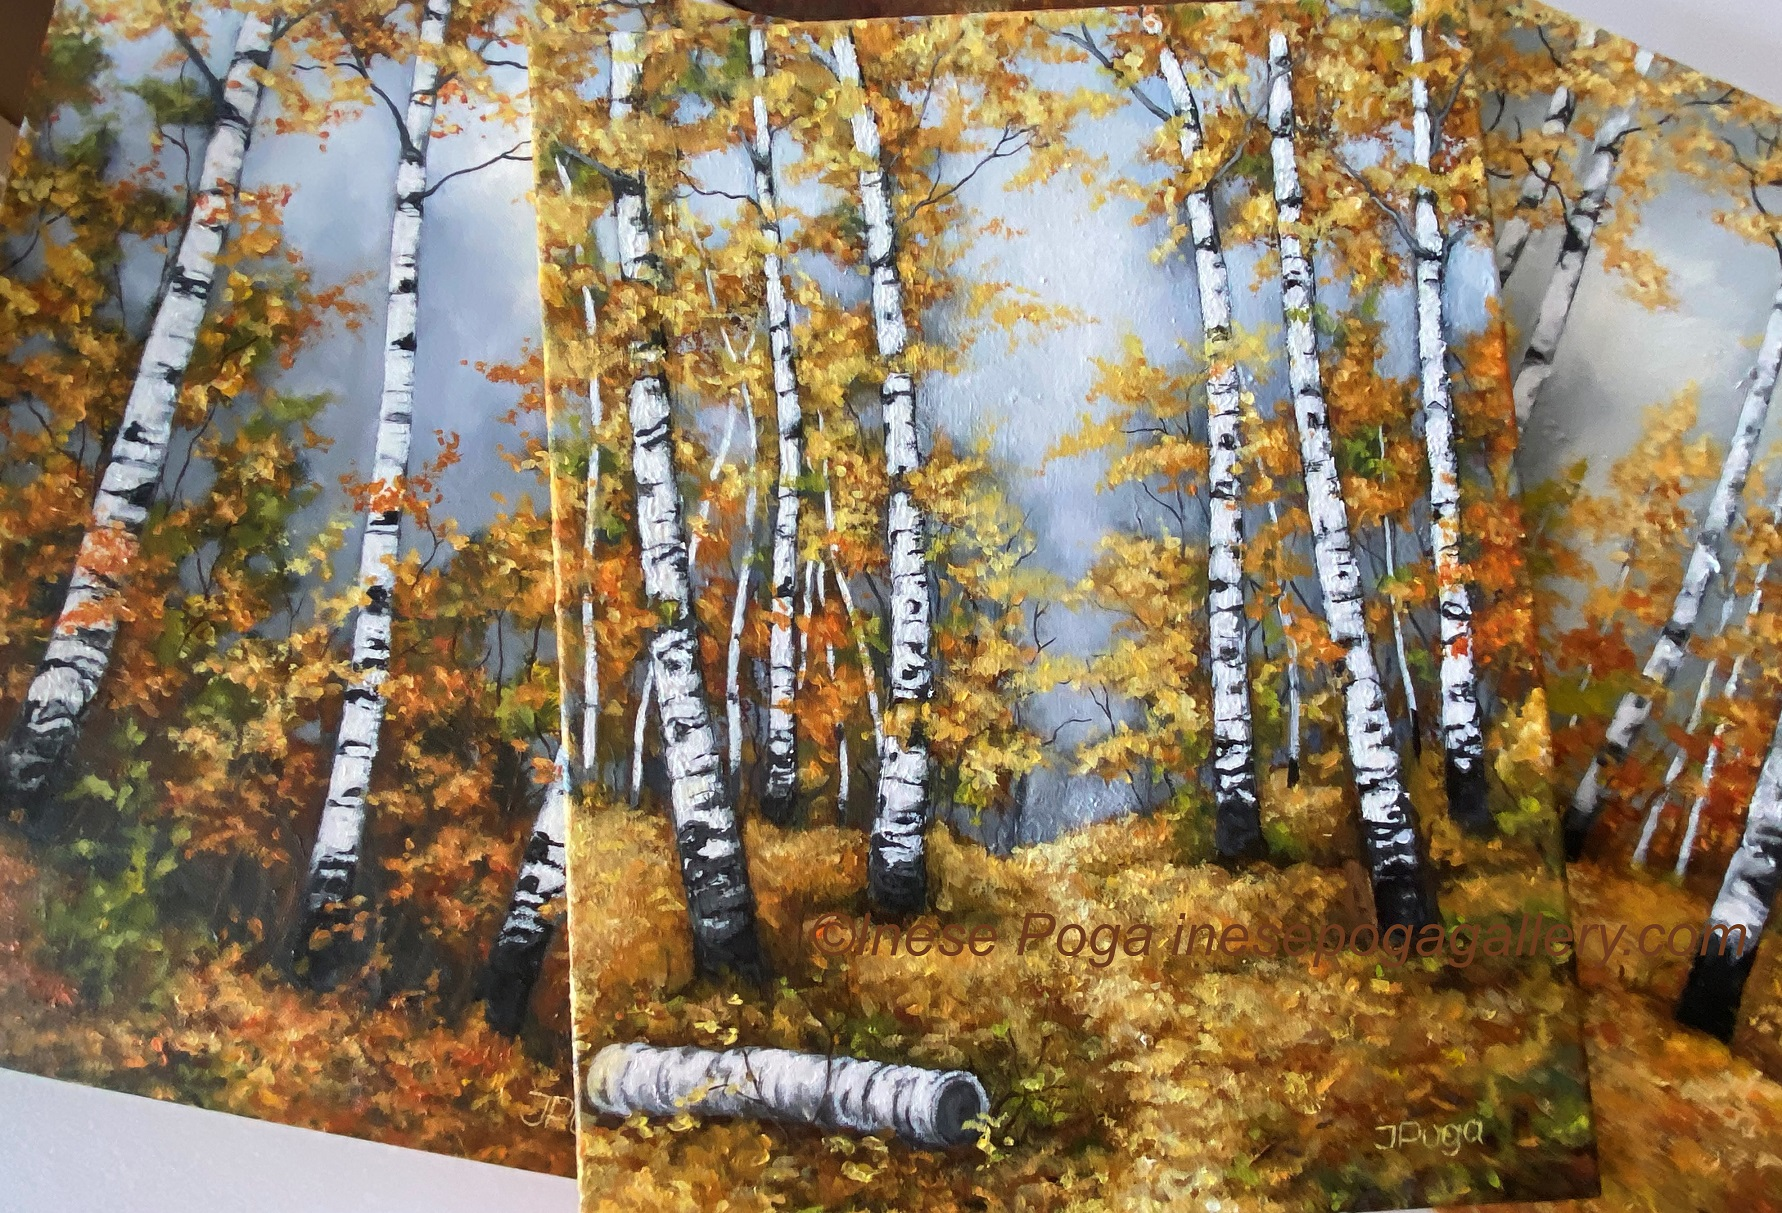 Find inspiration on the birch path